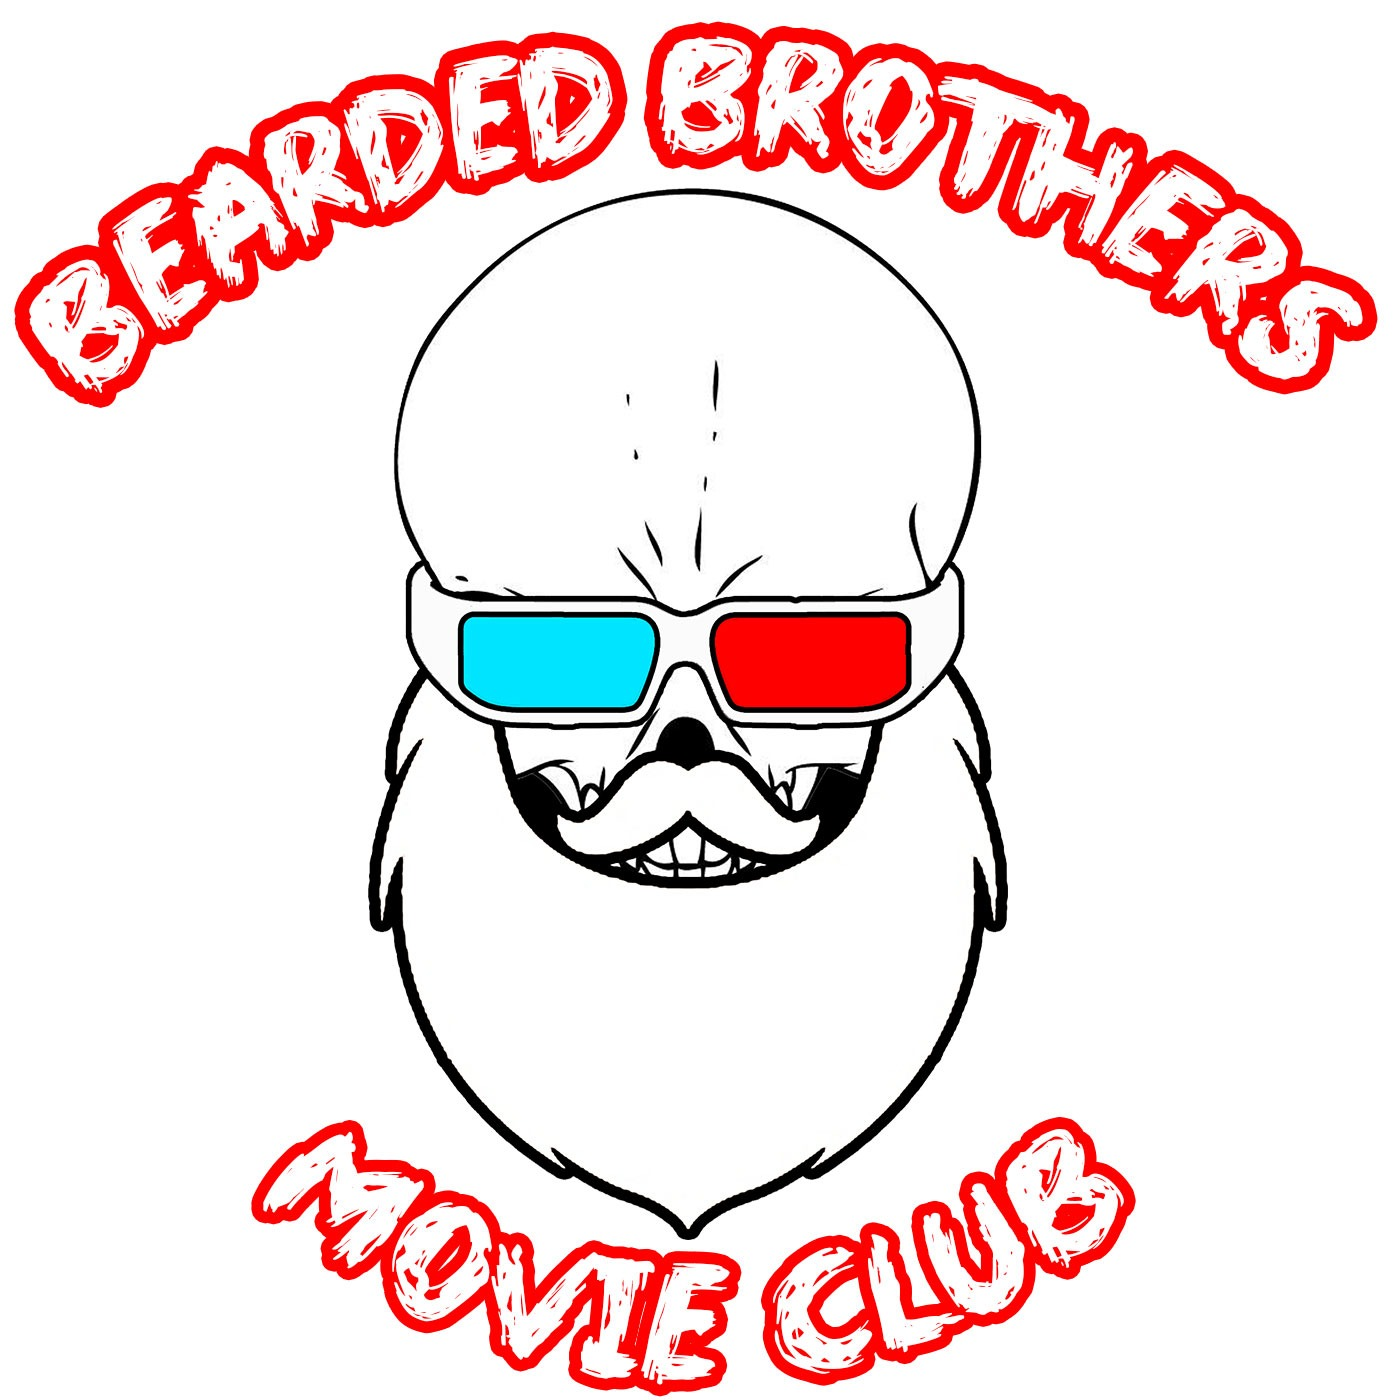 Bearded Brothers Movie Club